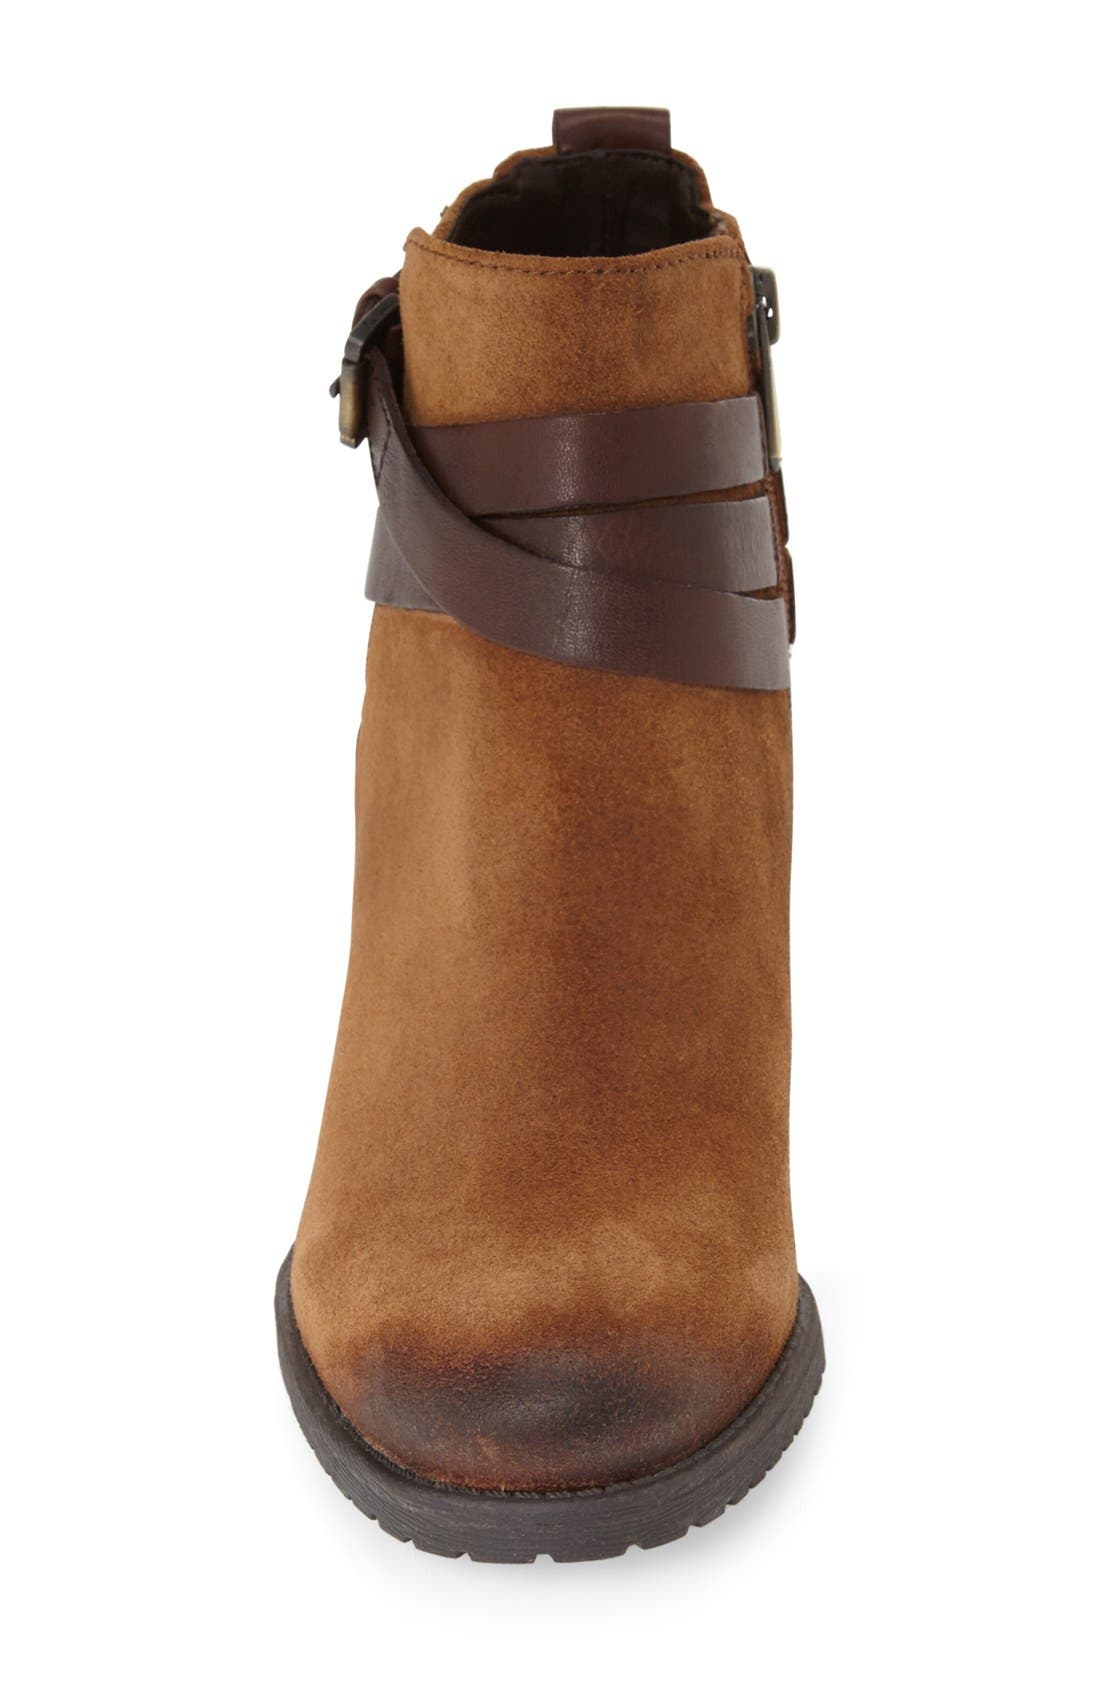 'Hannah' Belted Chelsea Bootie,                             Alternate thumbnail 3, color,                             Mocha Latte/ Sienna